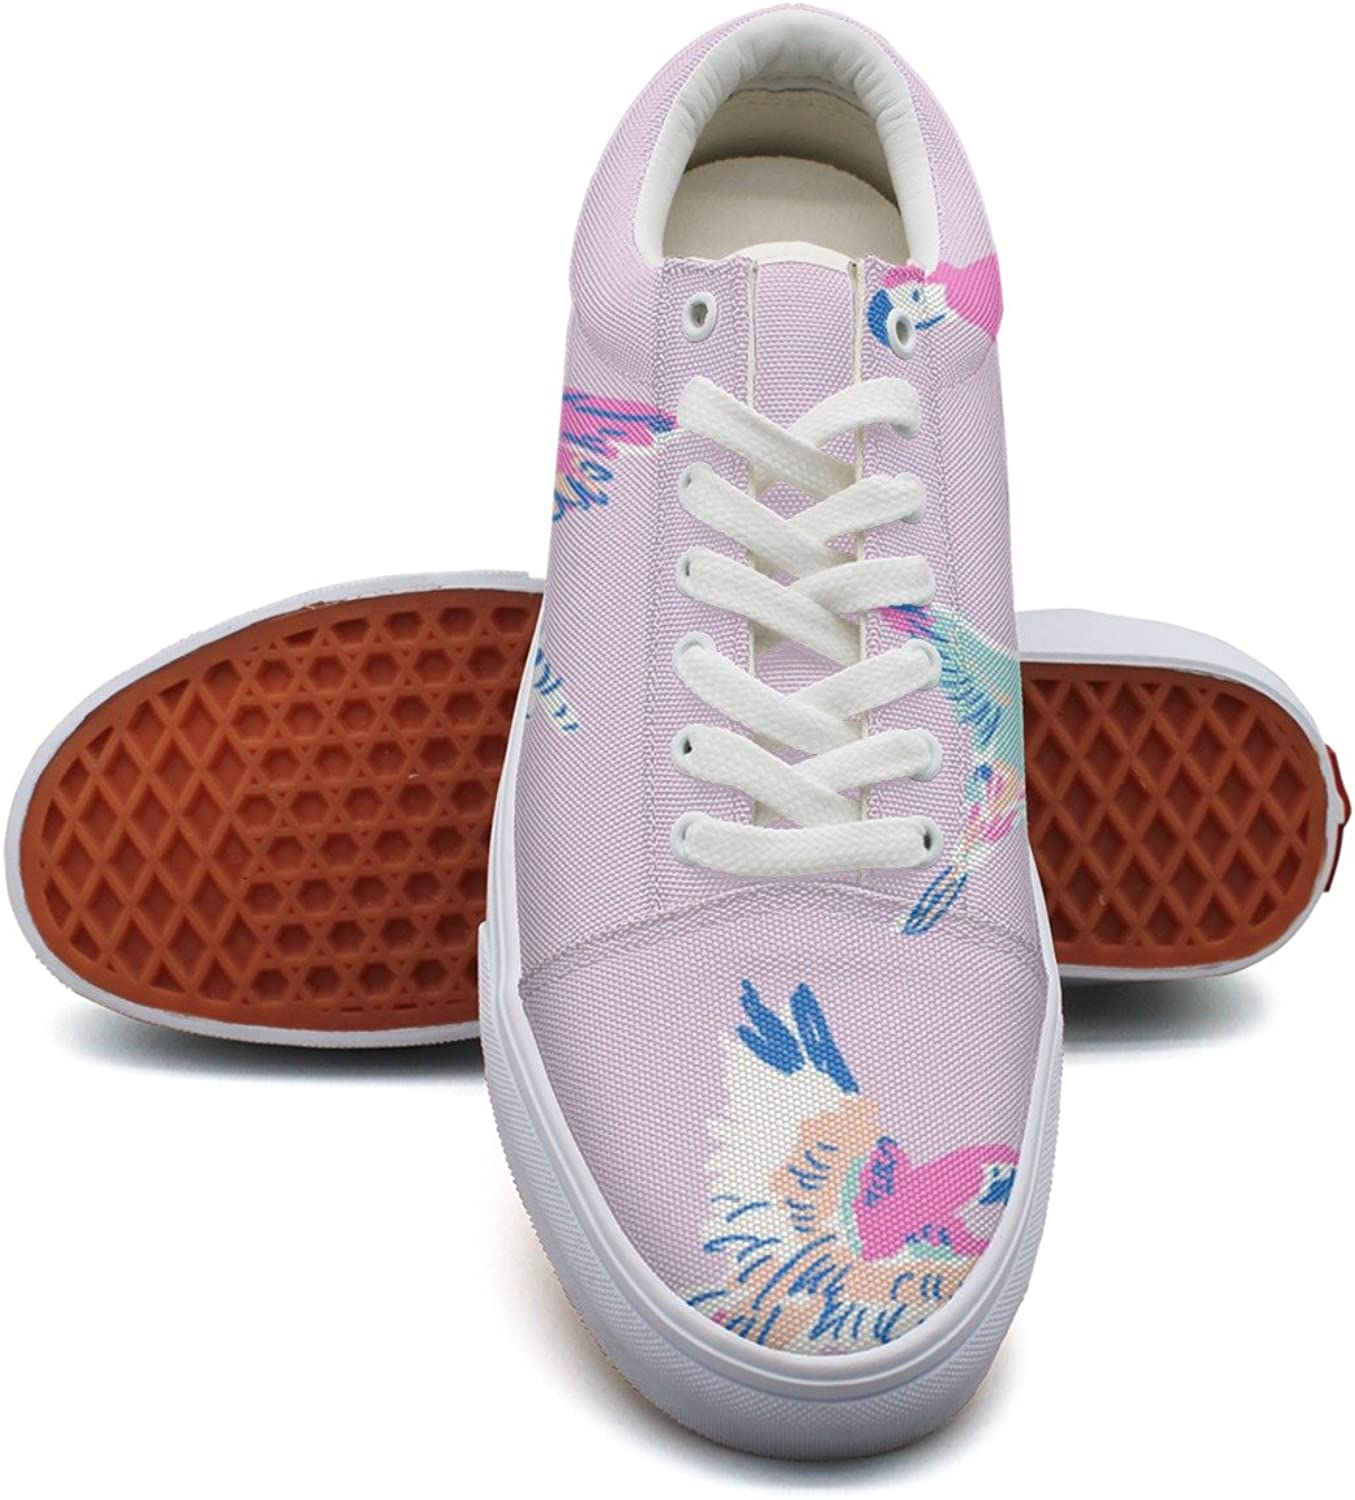 Feenfling Purple Parred Tropical Beach Birds Womens Light Canvas Running shoes Low Top Popular Athletic Sneakers for Women's